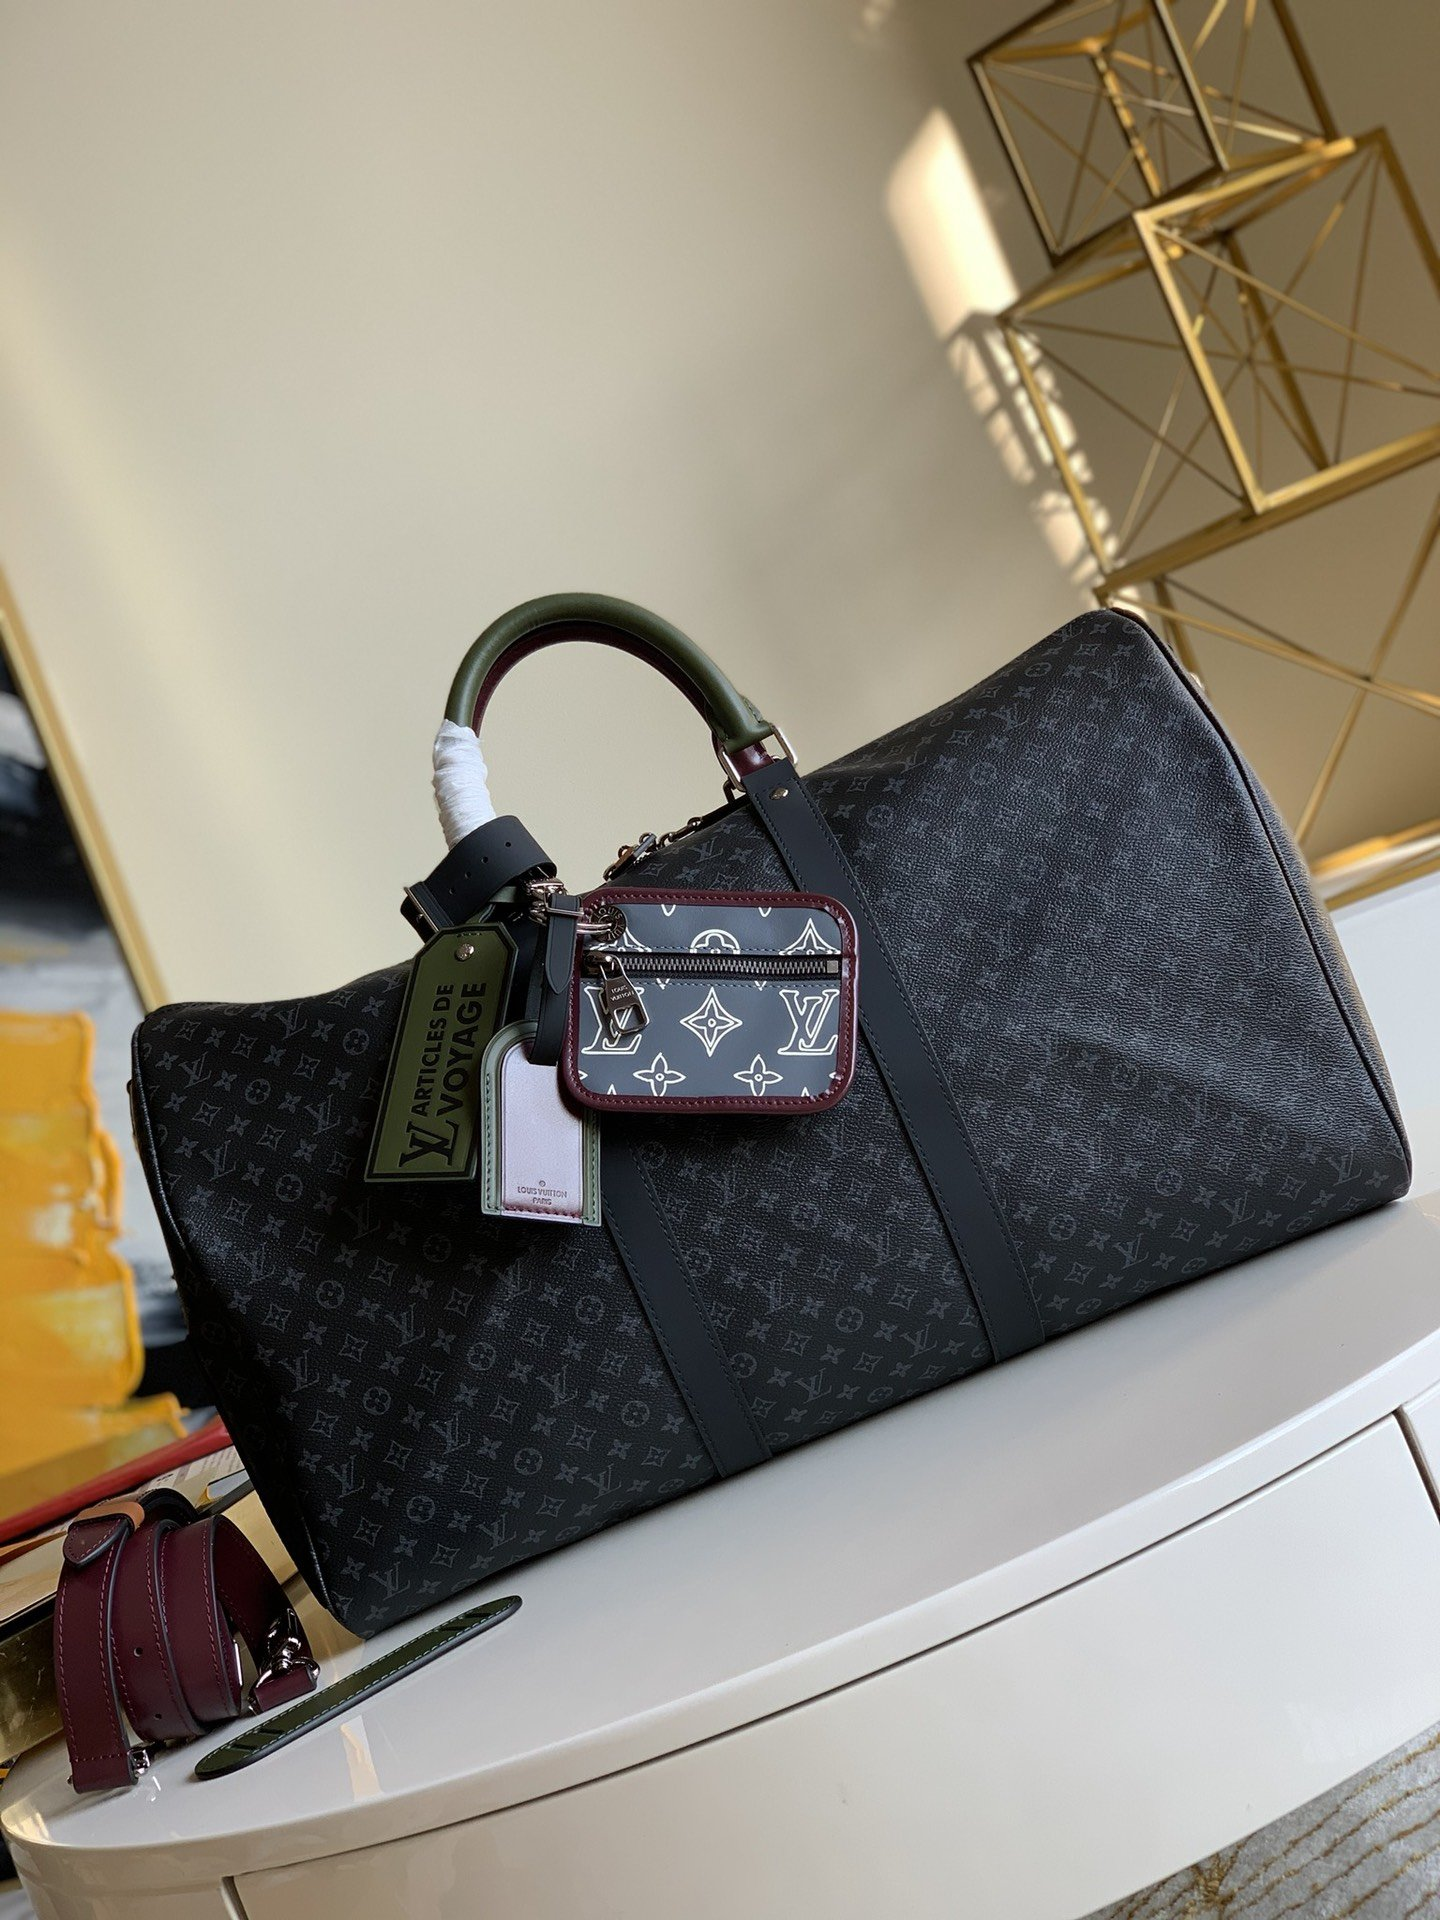 NEW Replica Louis Vuitton M56856 Keepall Bandouliere 50 Monogram Eclipse Coated Canvas and Cowhide Leather